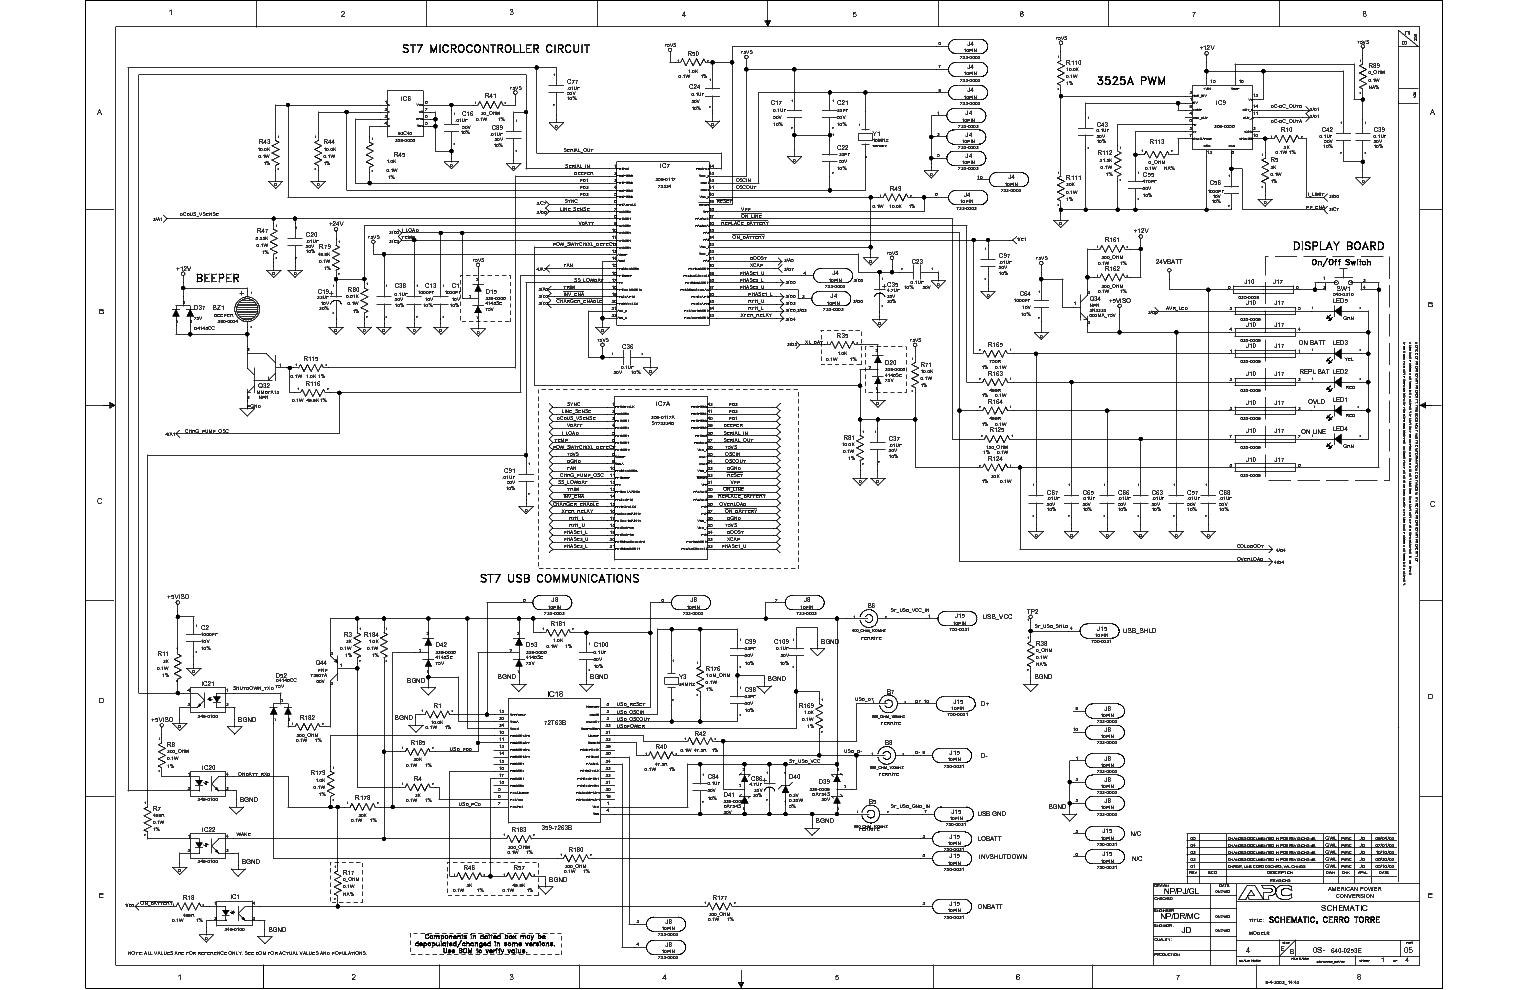 ups wiring diagram circuit 1997 toyota 4runner stereo apc library